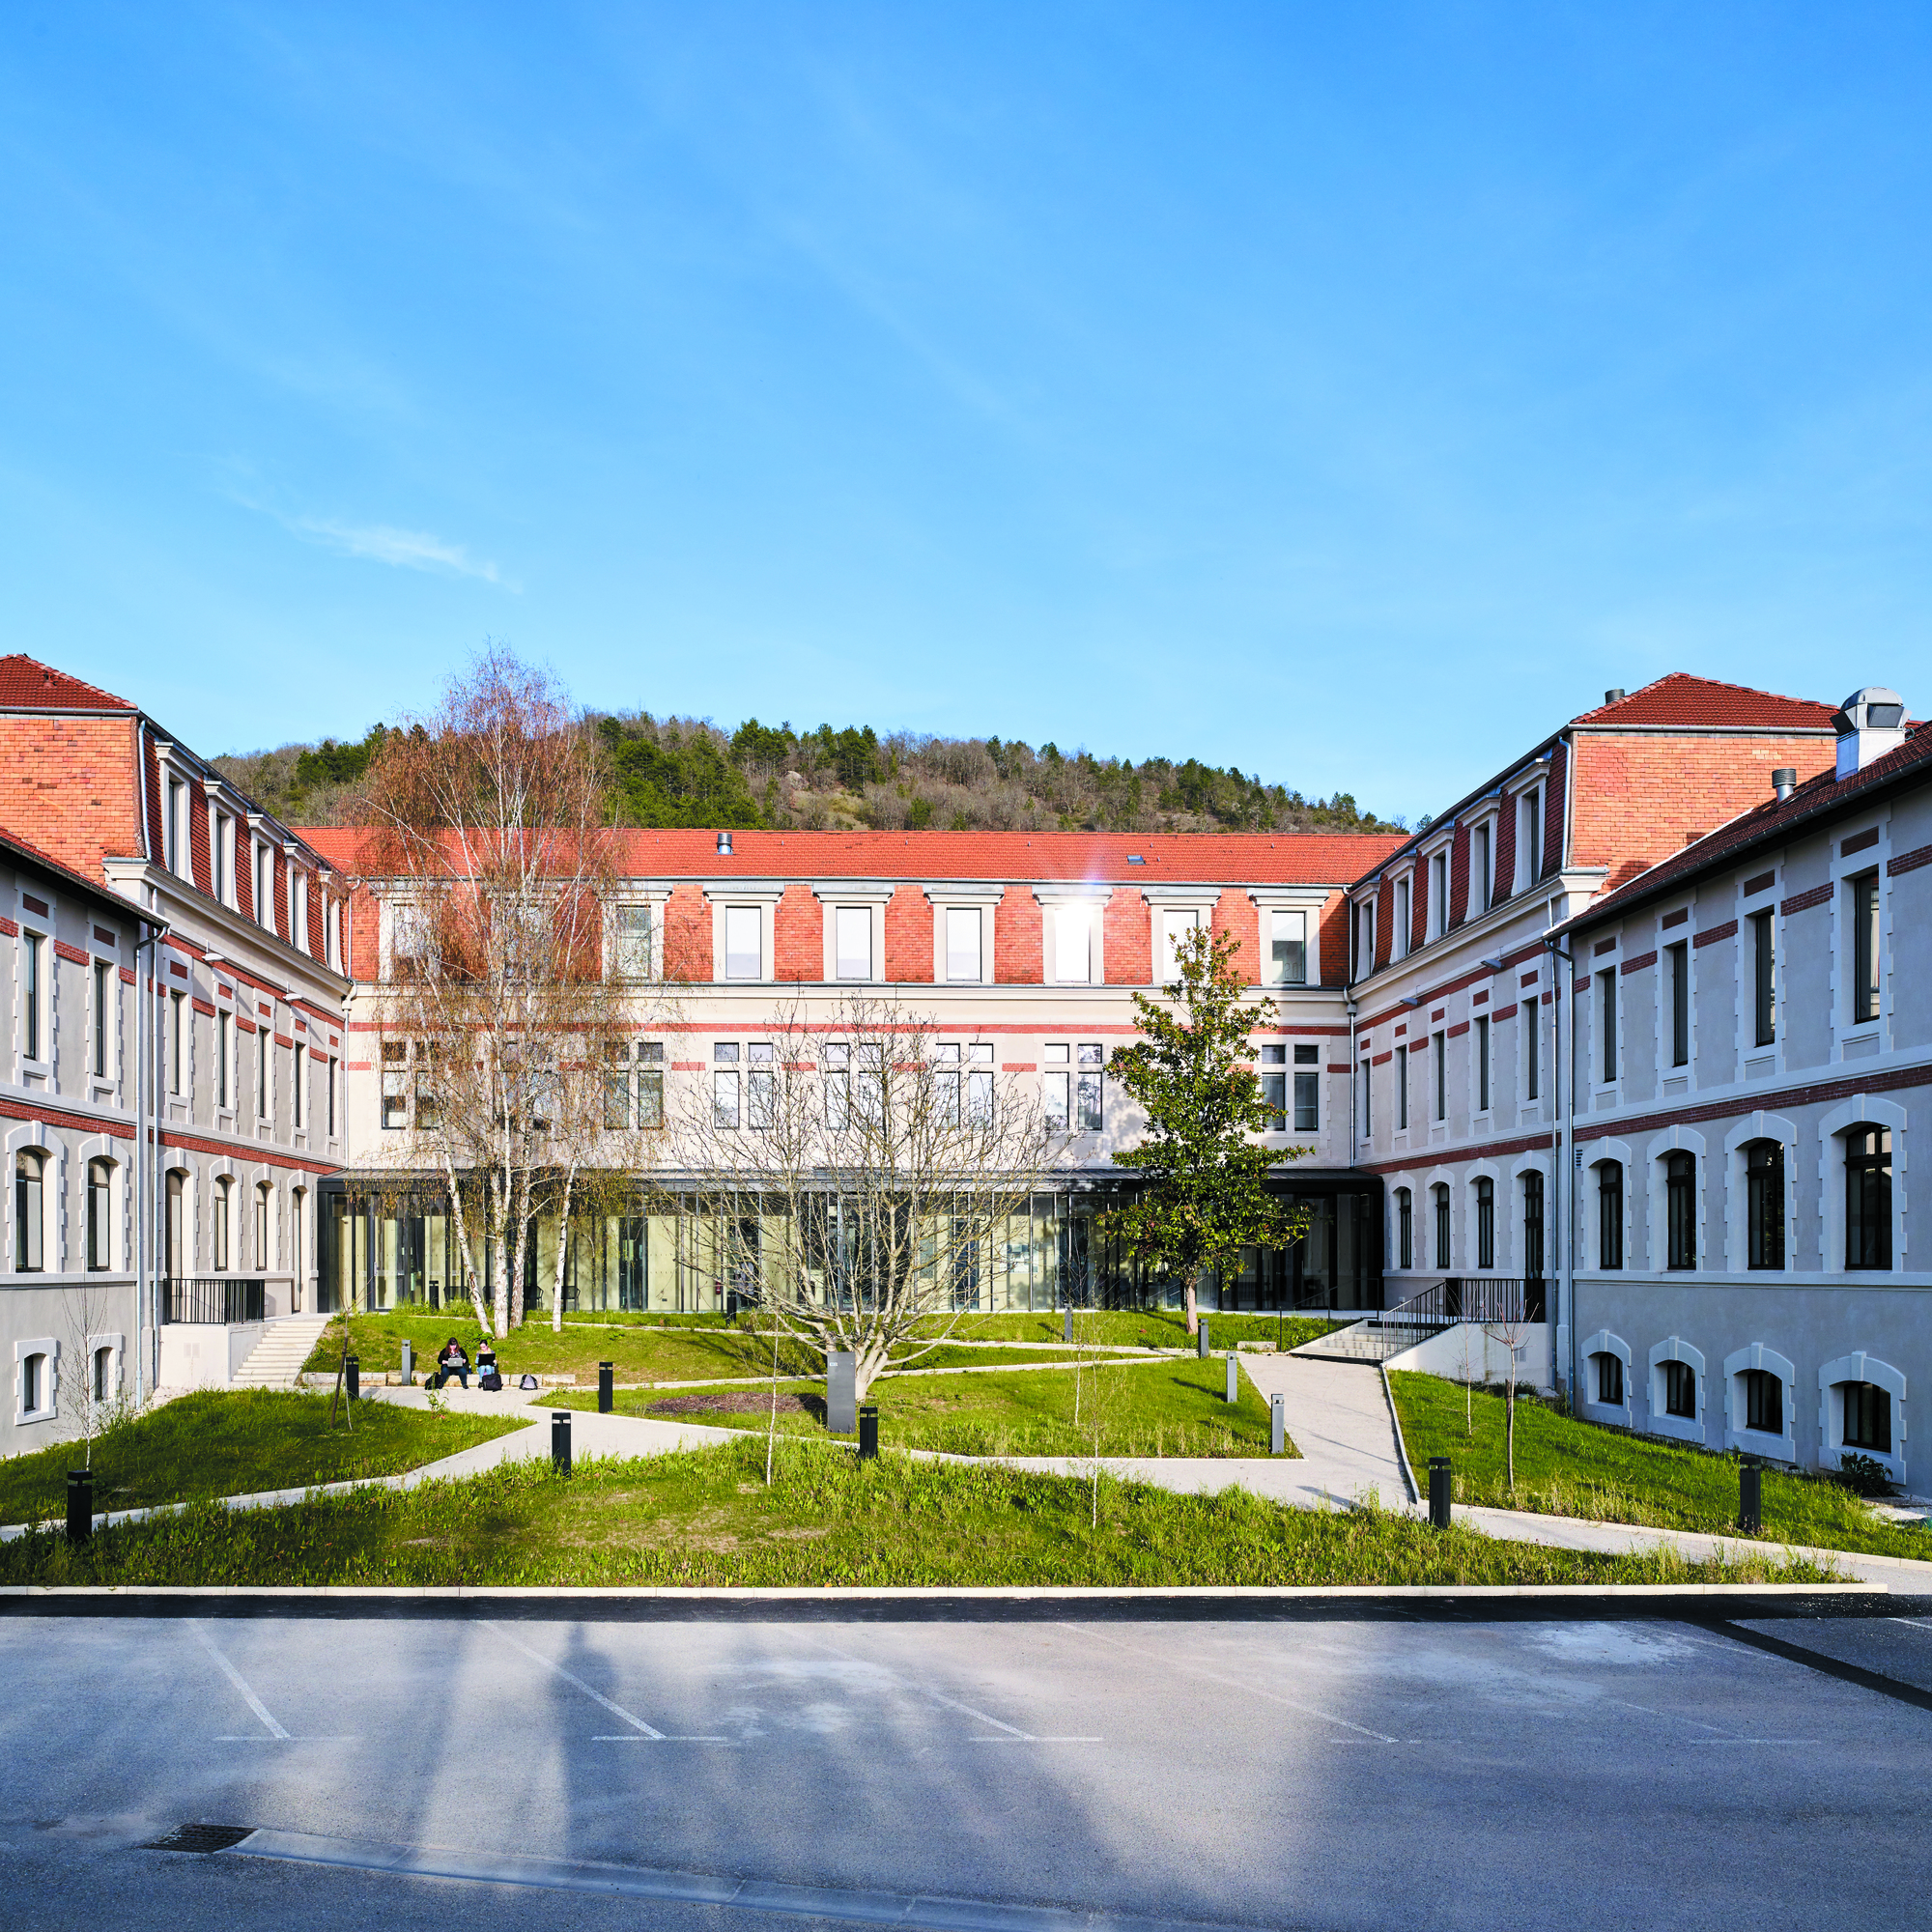 University Centre, Cahors, France - Image 7